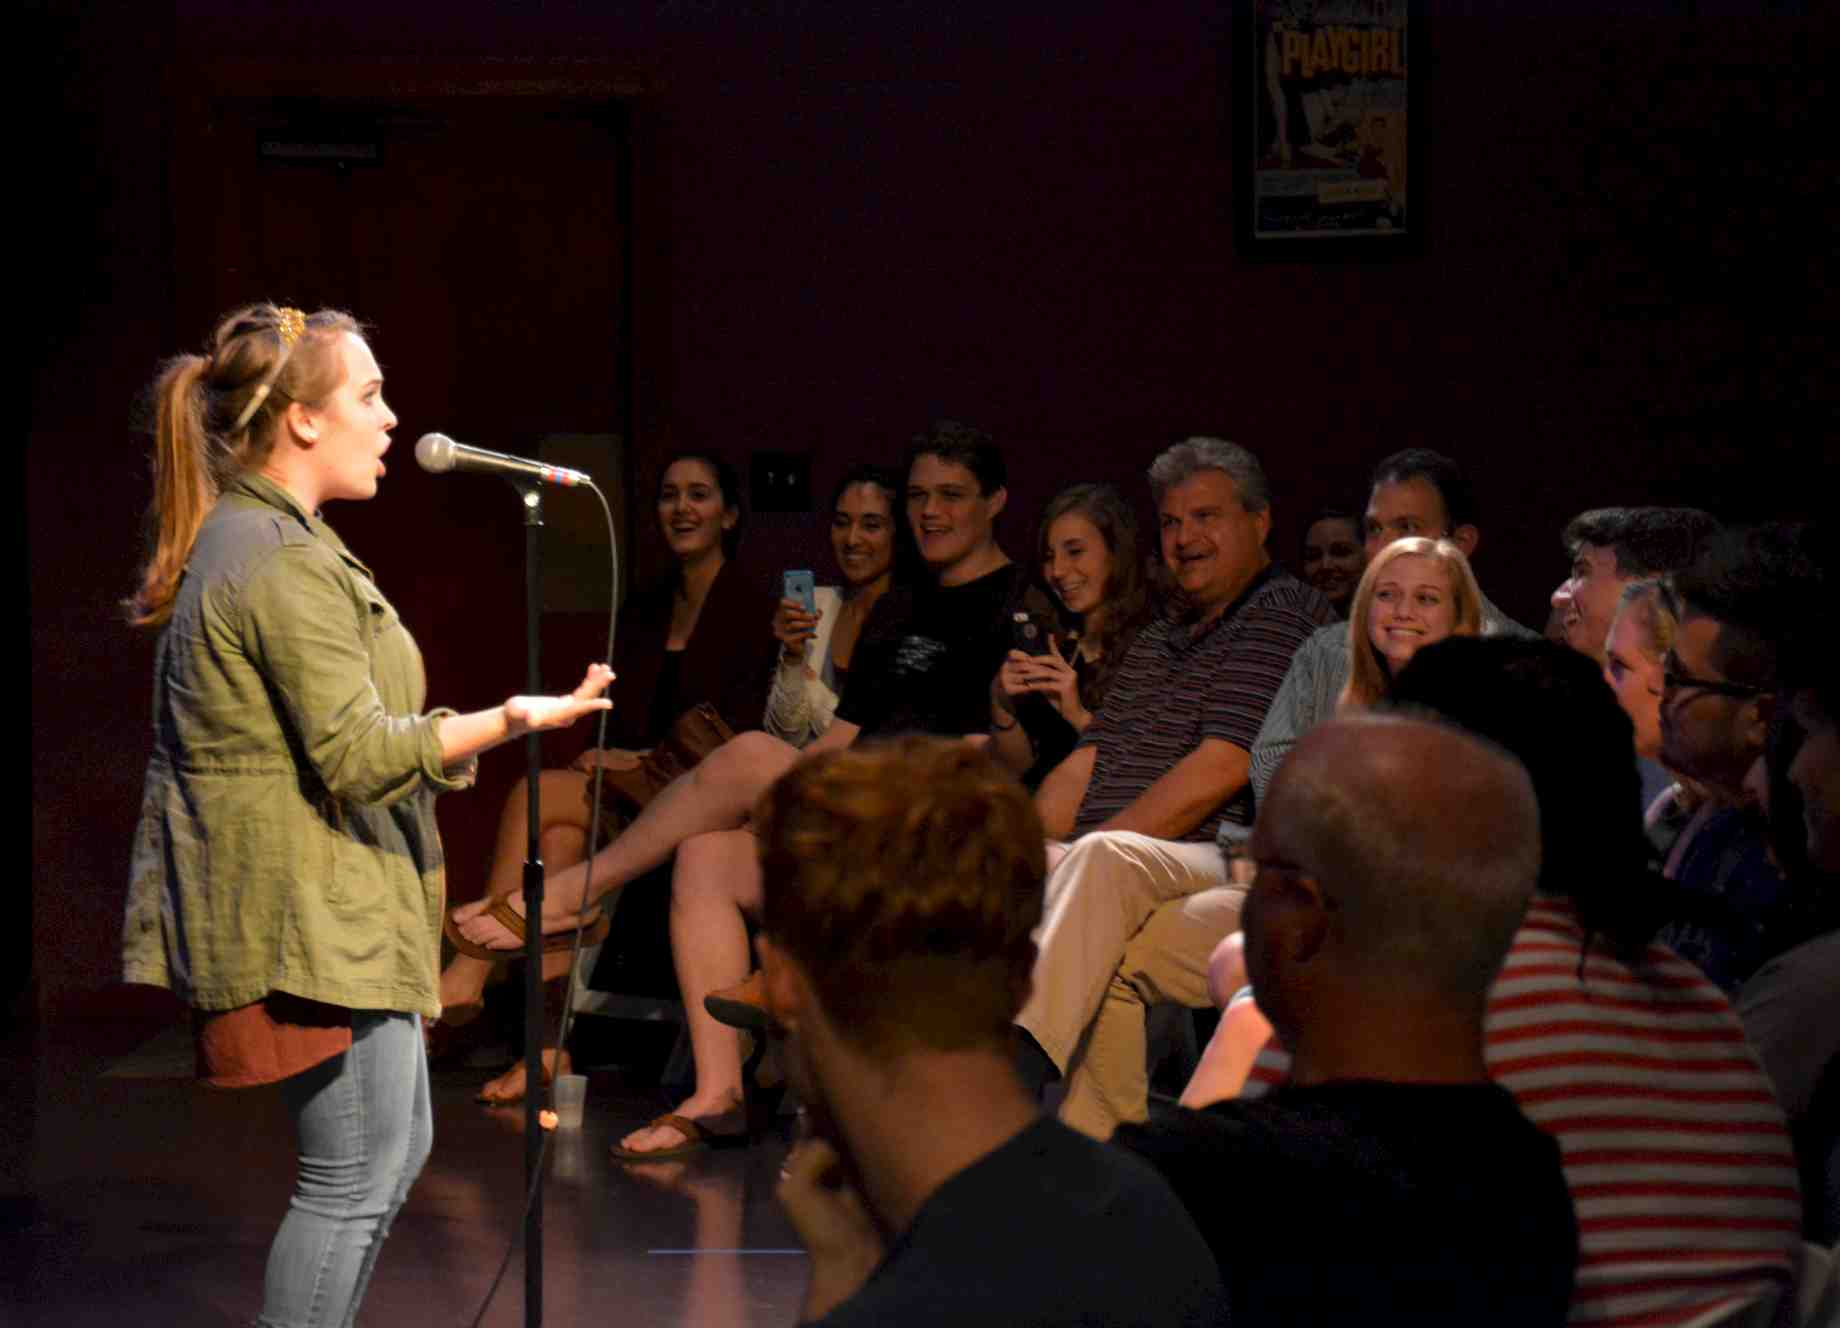 Simple Exhibition Stand Up Comedy : Students in new comedy class shine stand up show